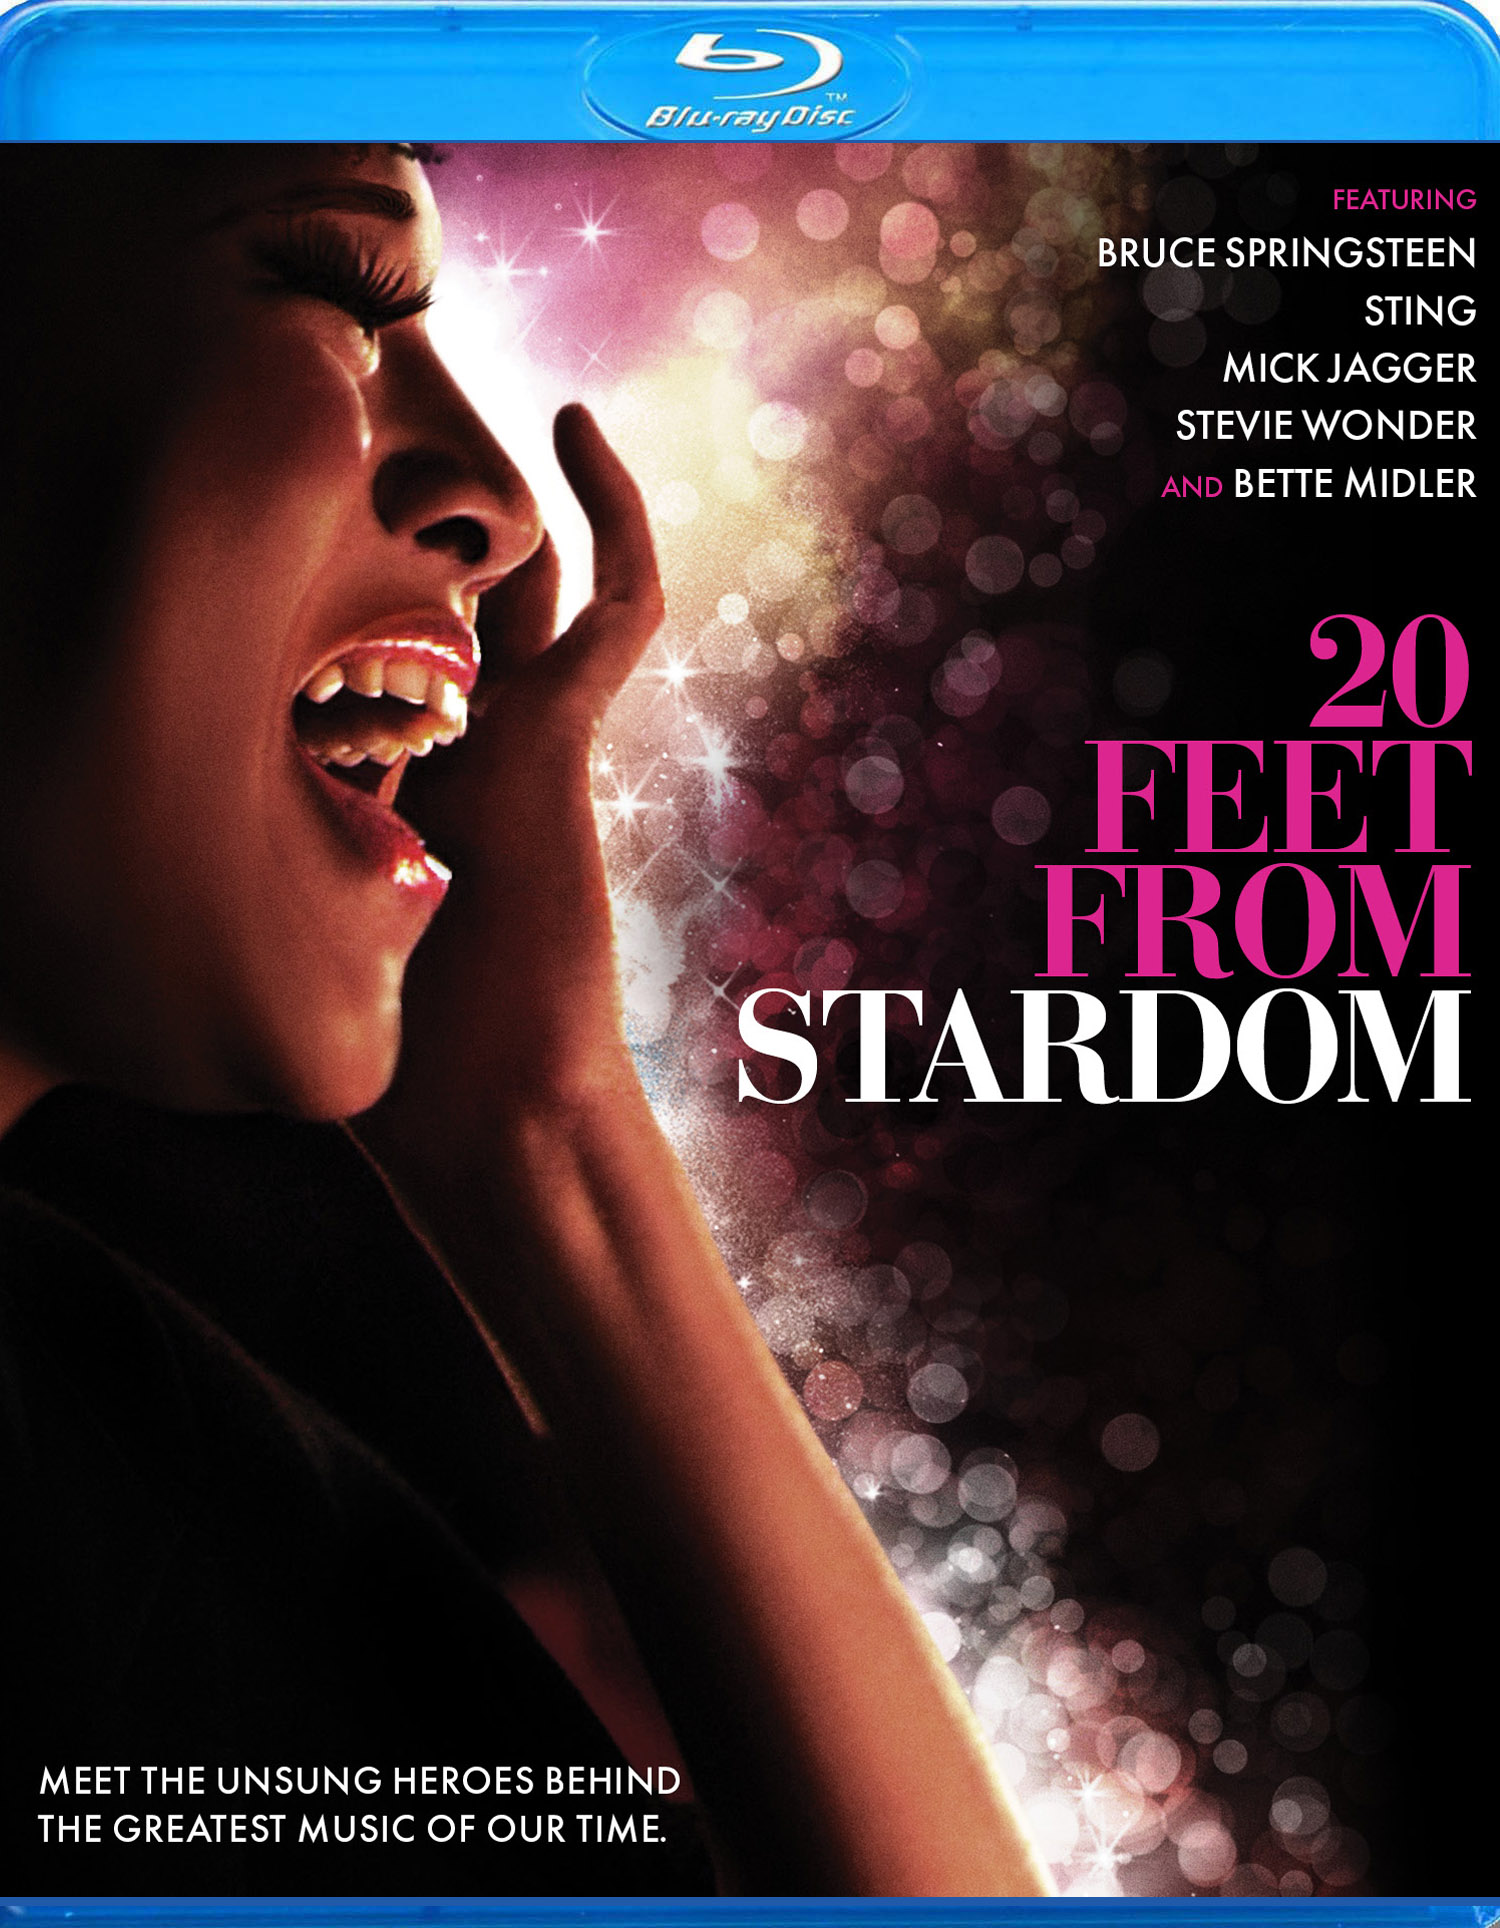 20 Feet From Stardom Blu-ray Review